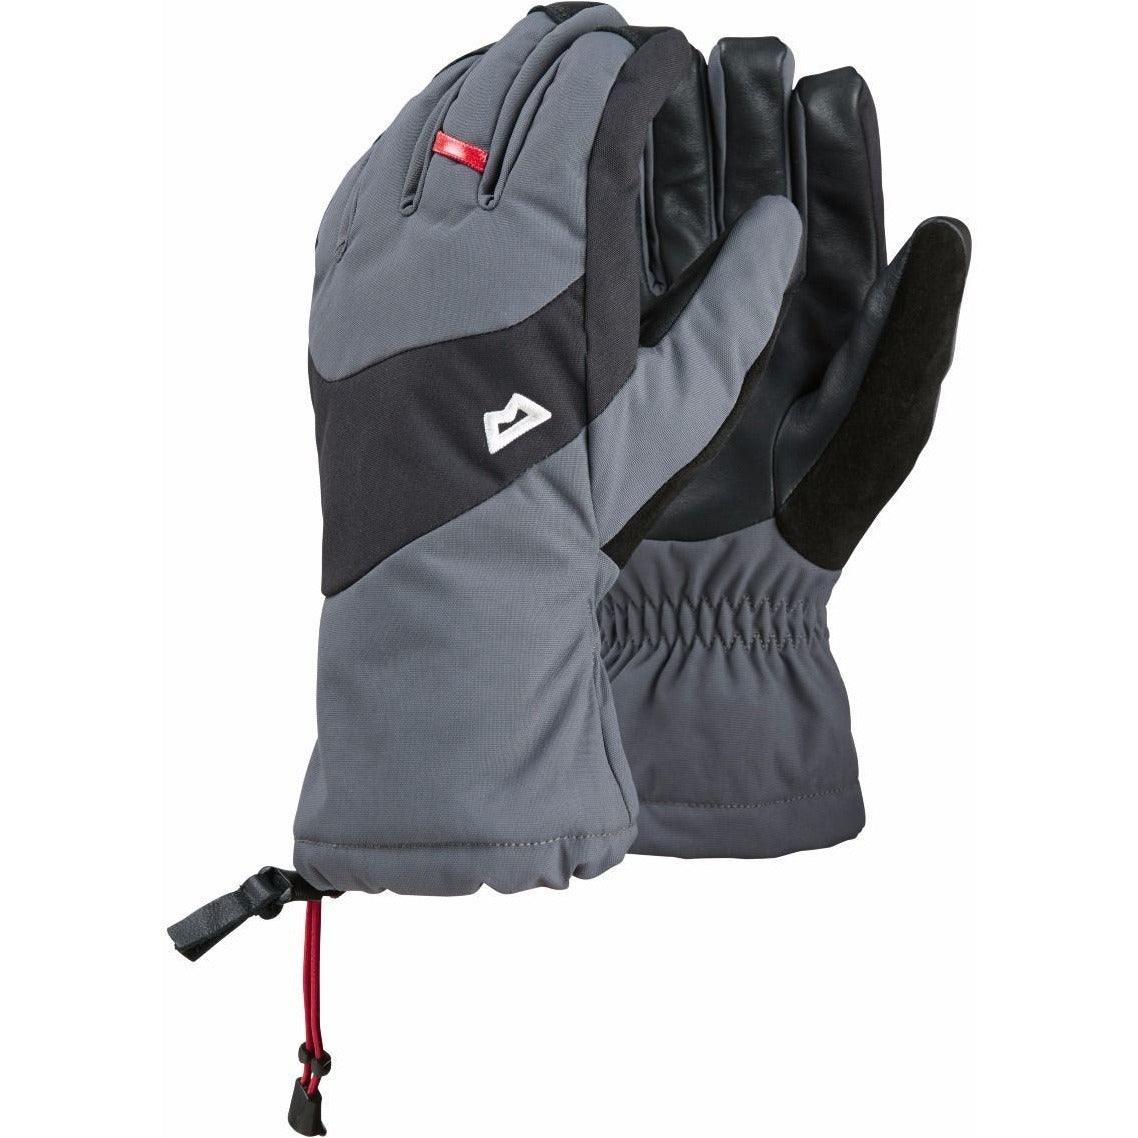 Mountain Equipment Guide Glove